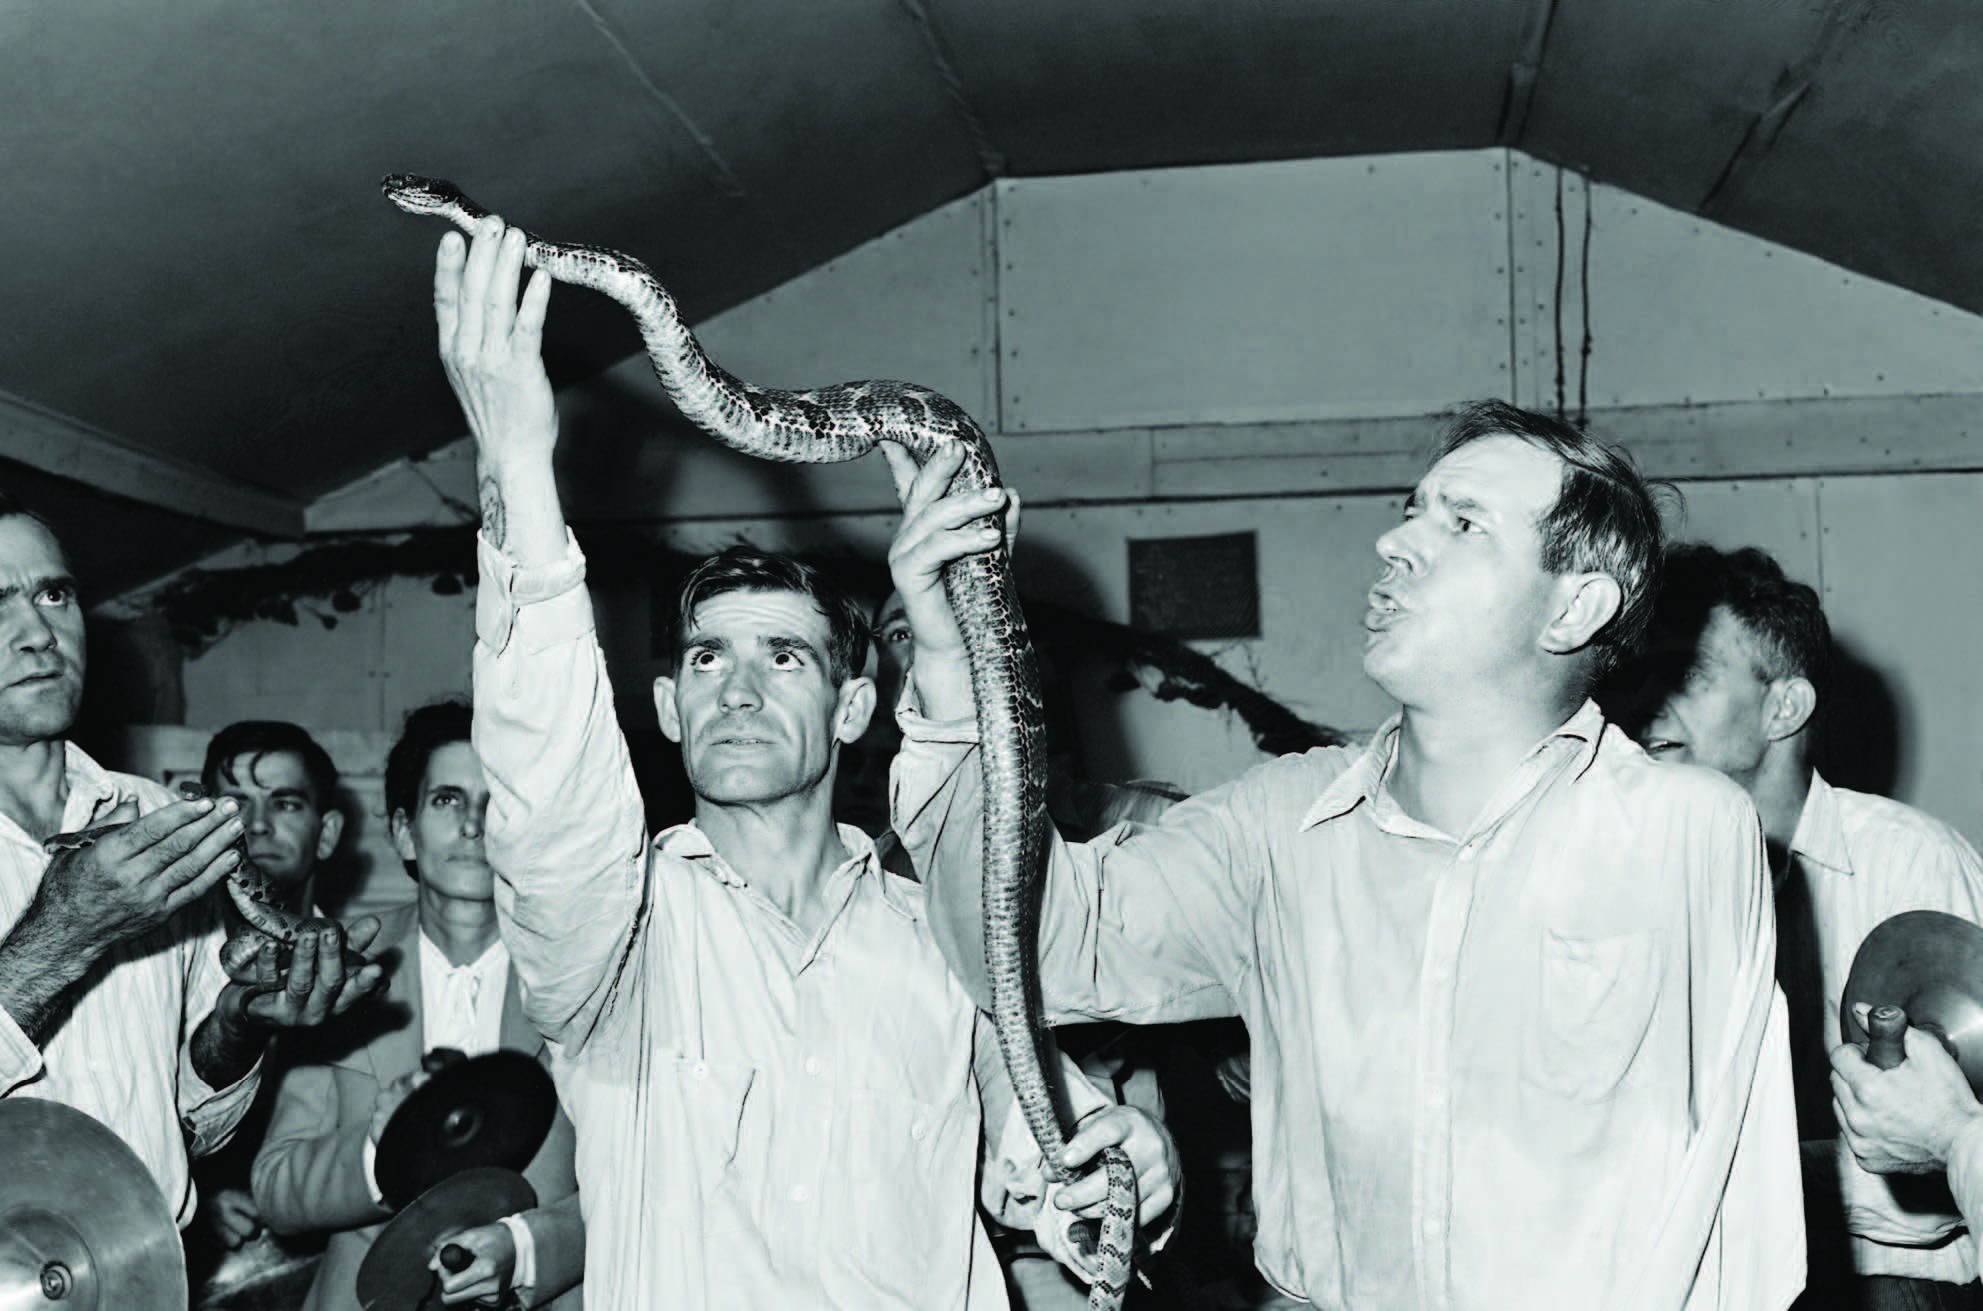 Handling serpents at the Pentecostal Church of God. September 15, 1946. Photograph by Russell Lee. Lejunior, Harlan County, Kentucky